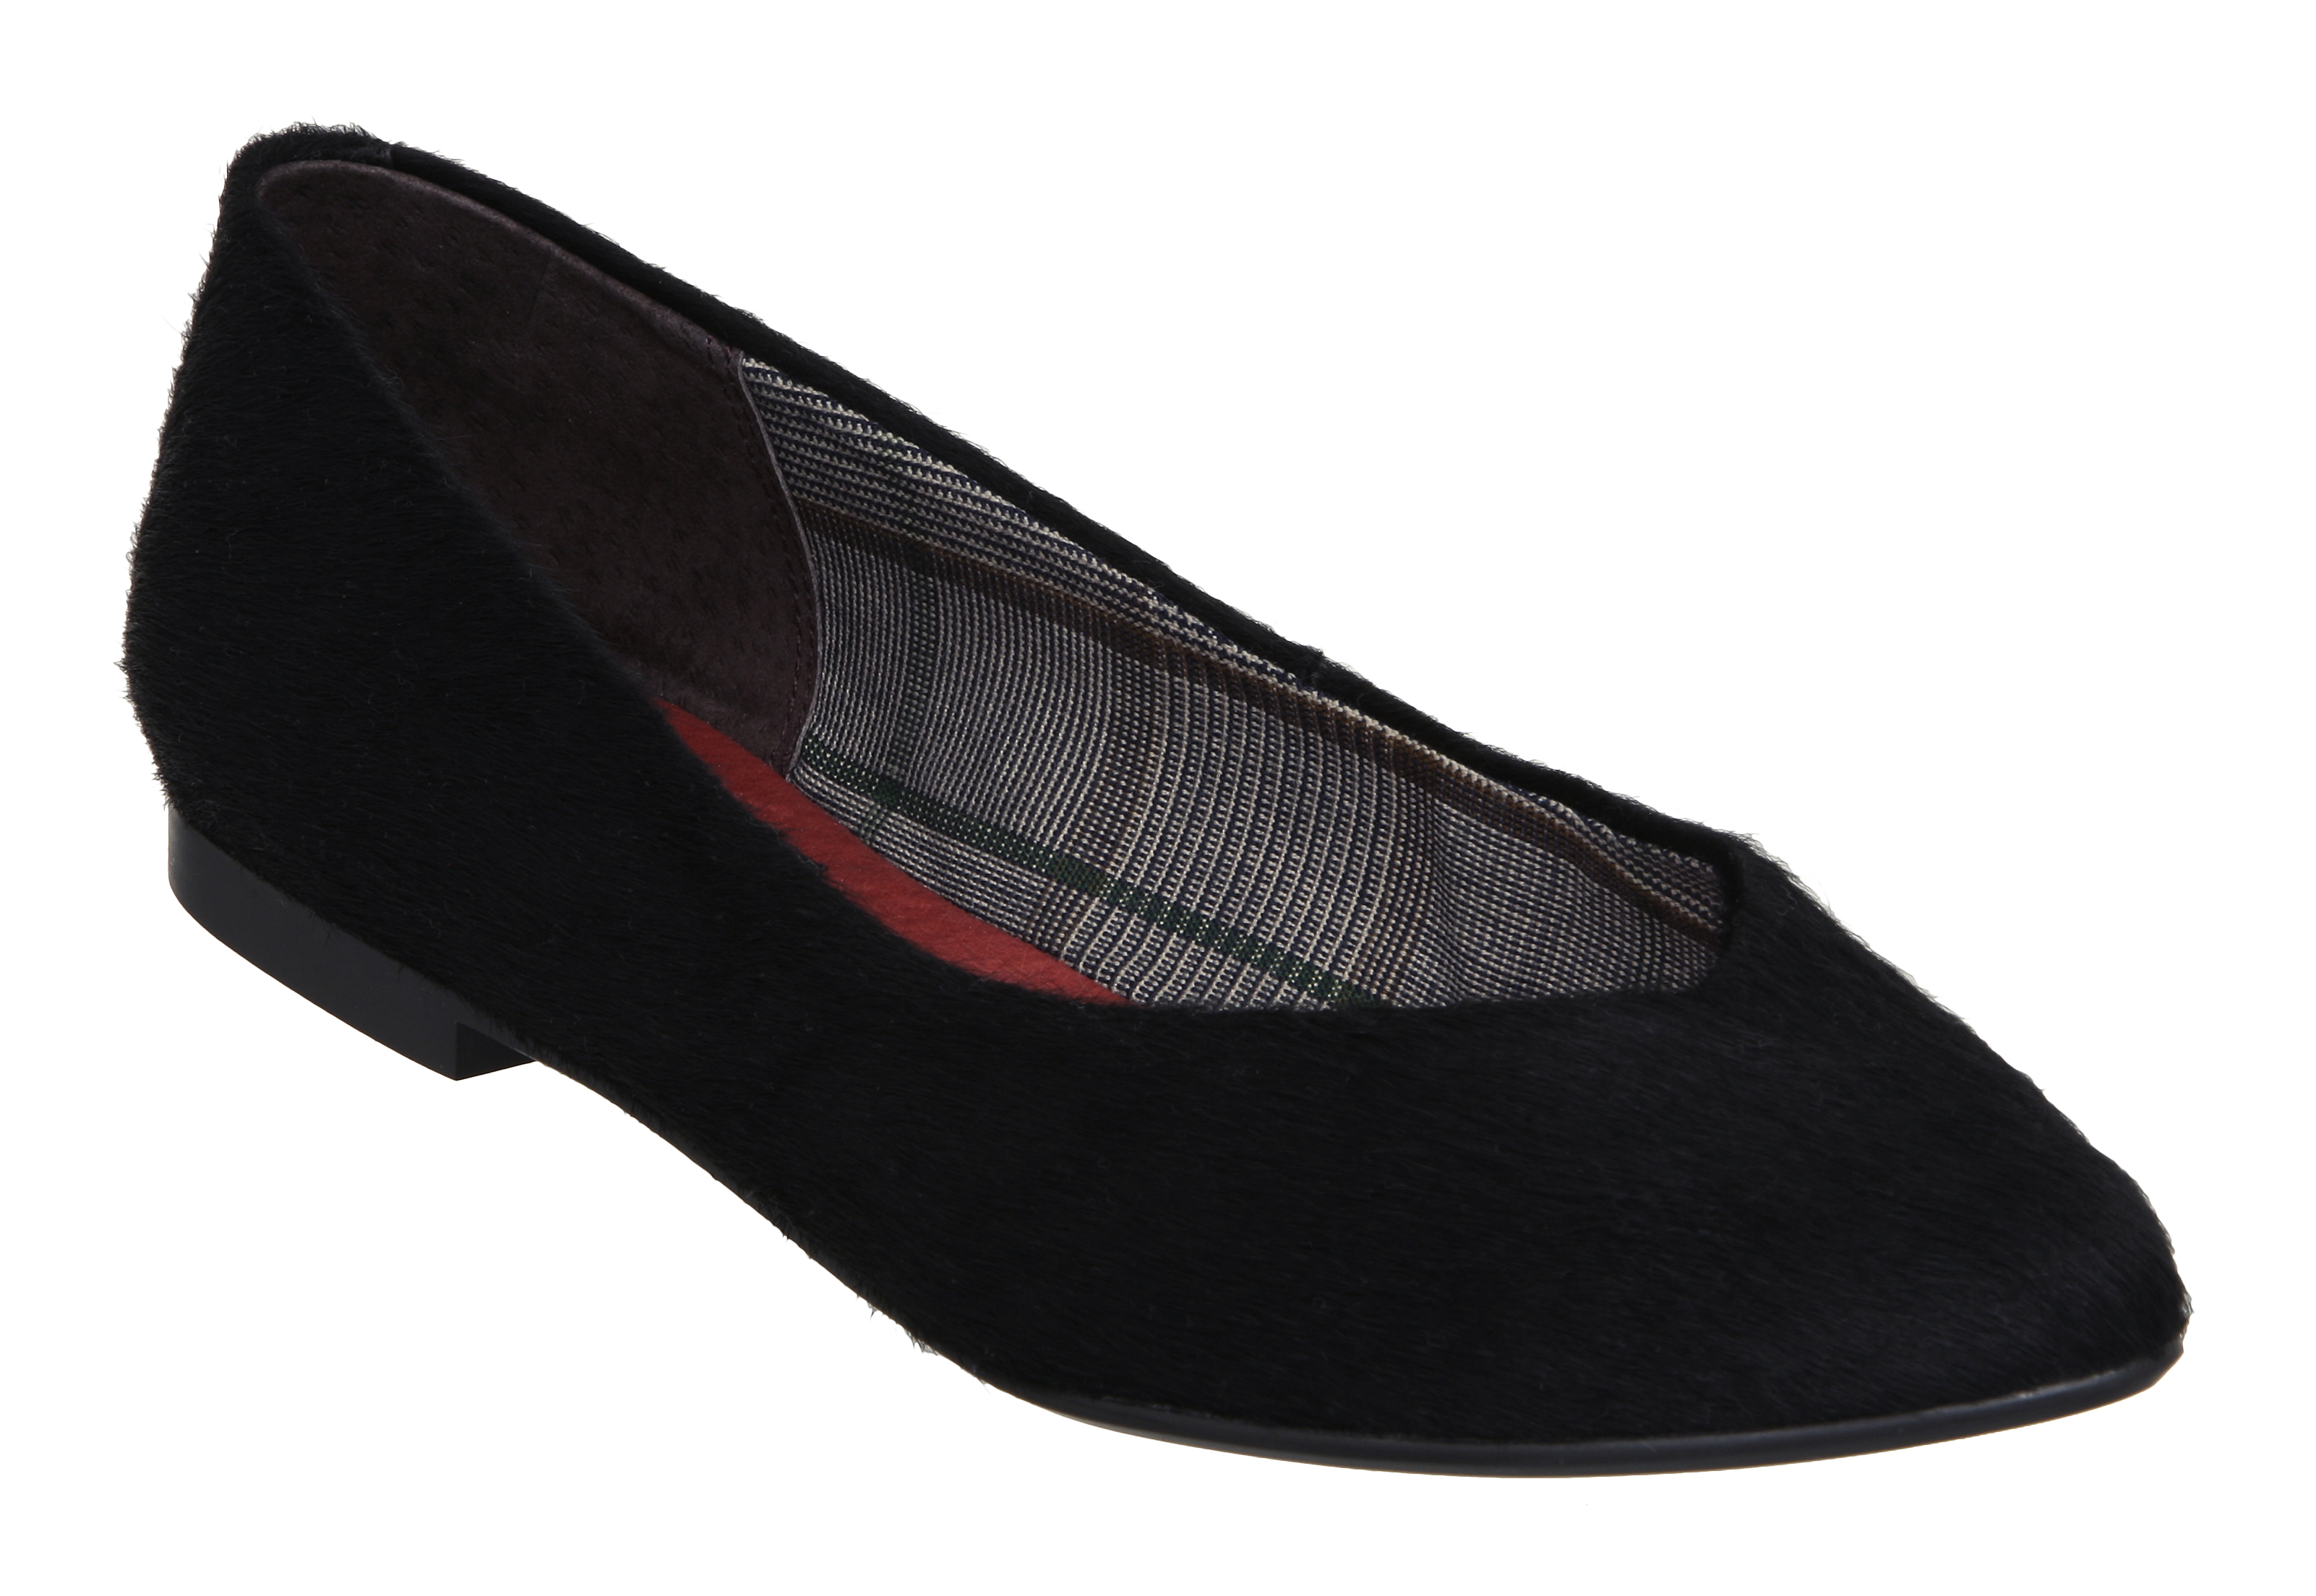 NEW-BERTIE-LADIES-MIRABELLE-BLACK-PONY-WOMENS-FLAT-BALLERINA-SHOES-SIZE-3-8-UK